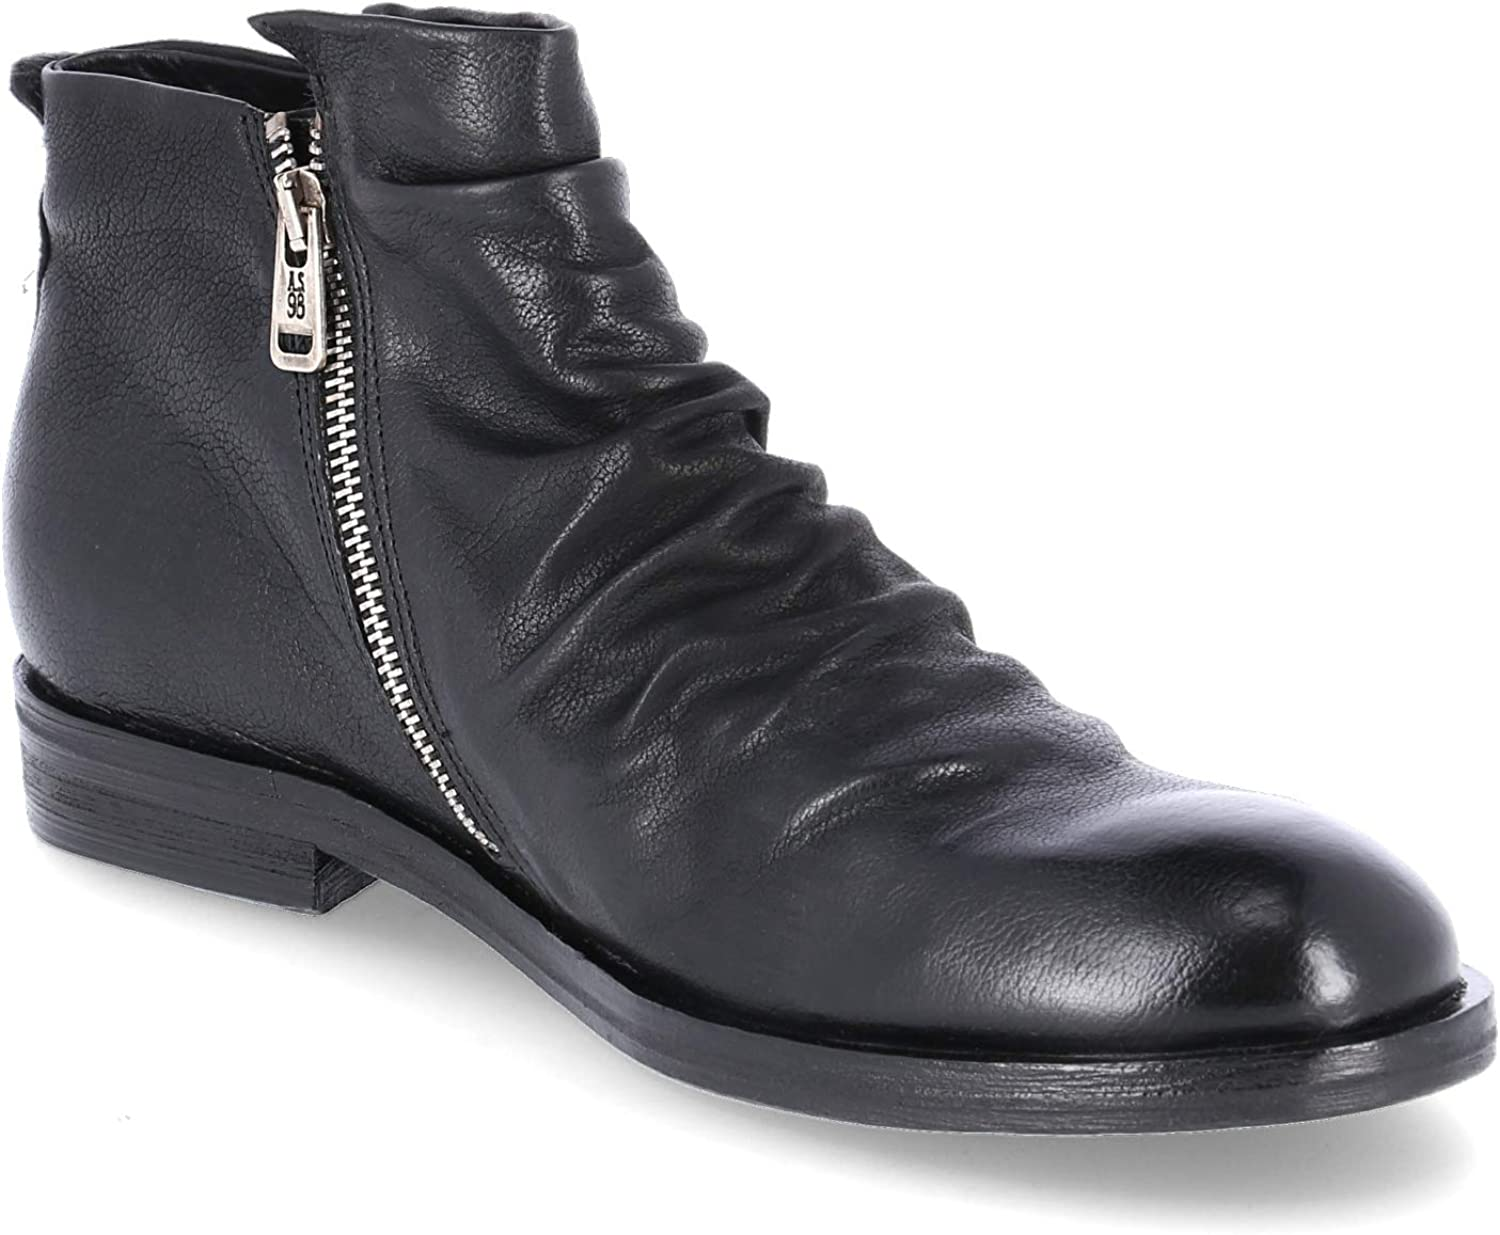 A.S. 98 490212 Men's Boots in Black Leather Black